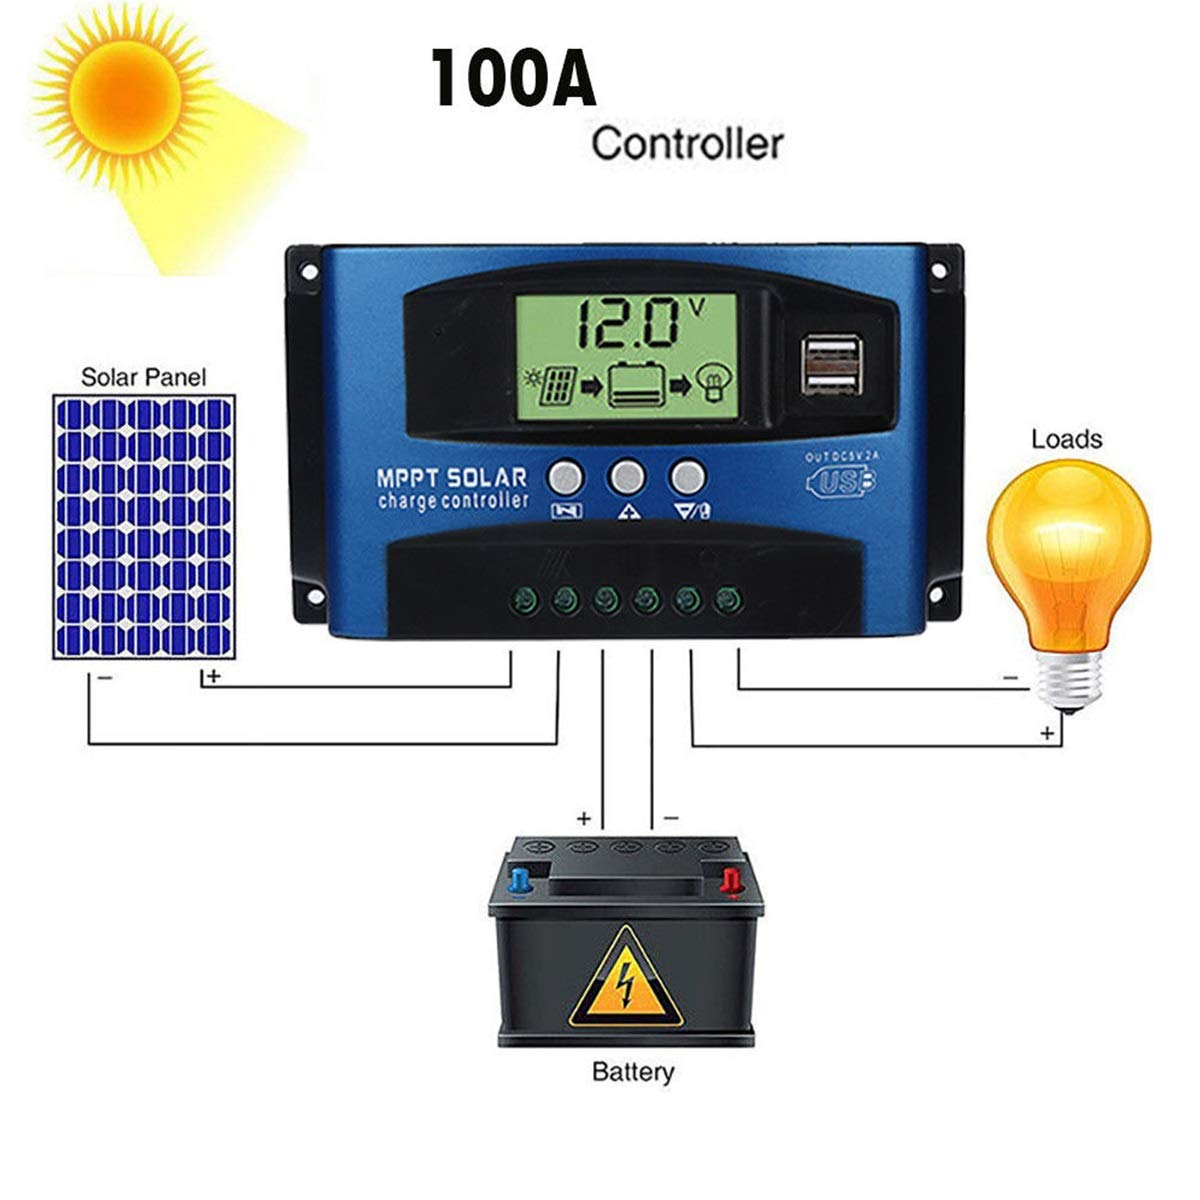 Yunhany Direct 40A/100A 12V-24V Auto Focus Tracking MPPT Solar Panel Regulator Charge Controller (Style : 100A)